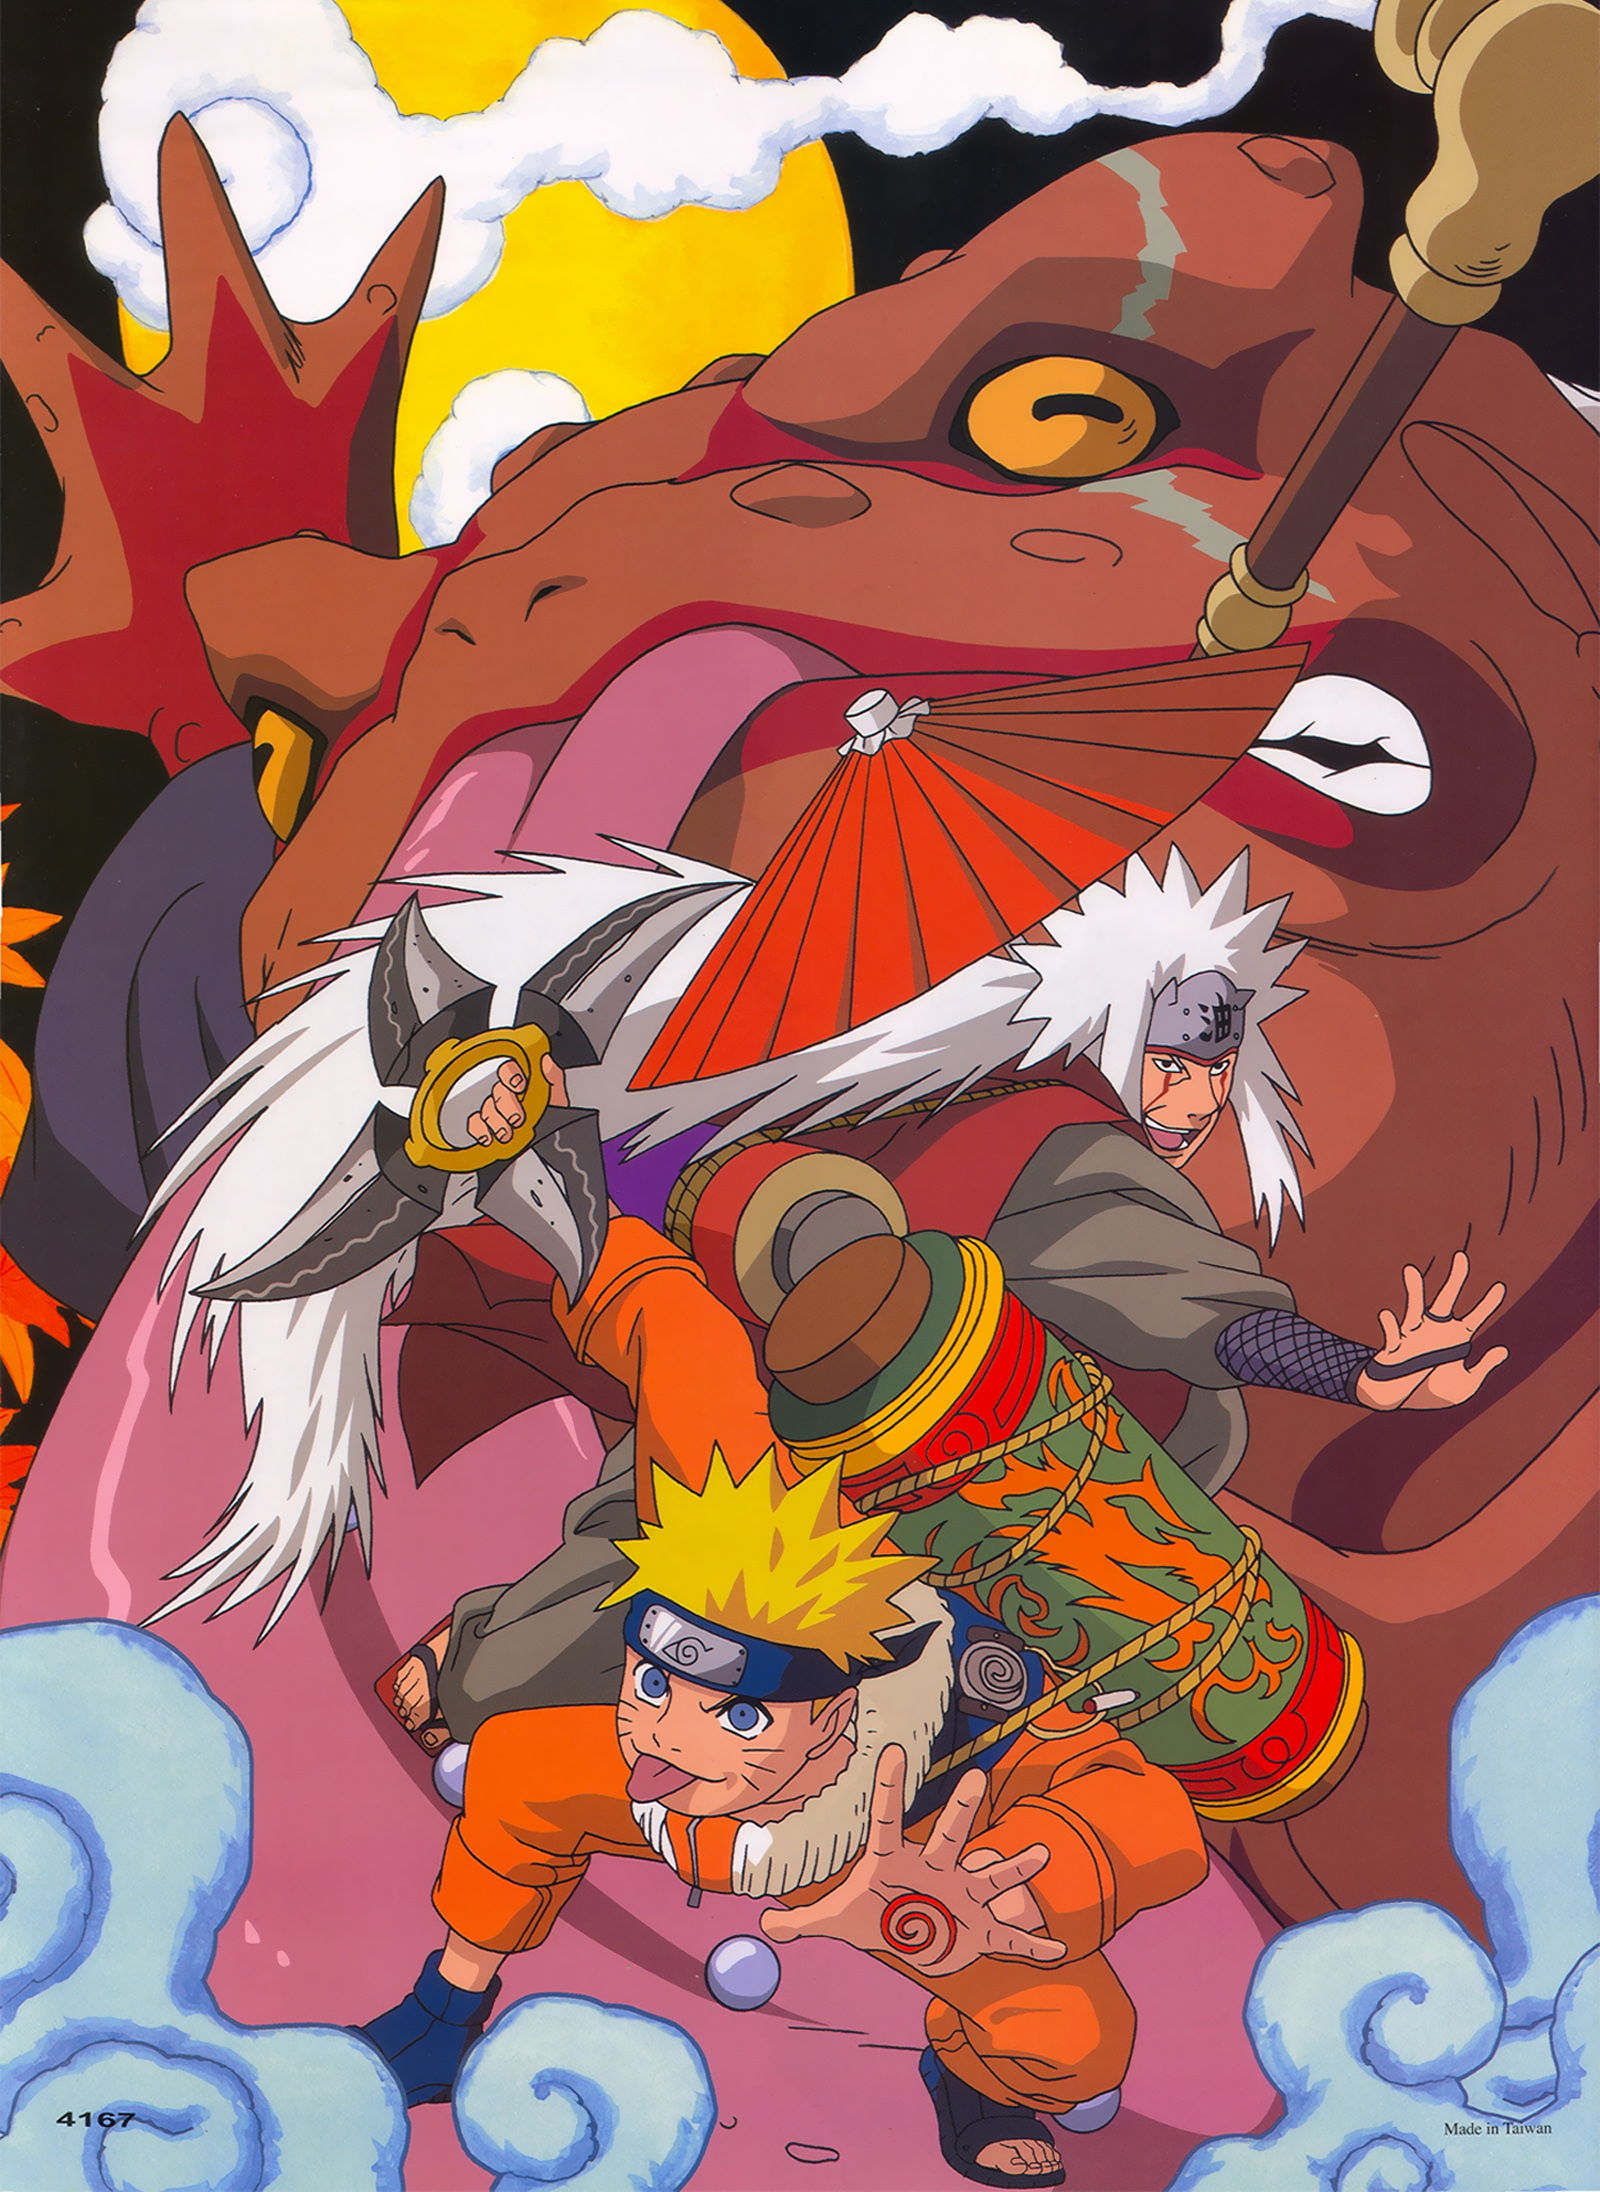 Naruto, Jiraya, and Gamabunta